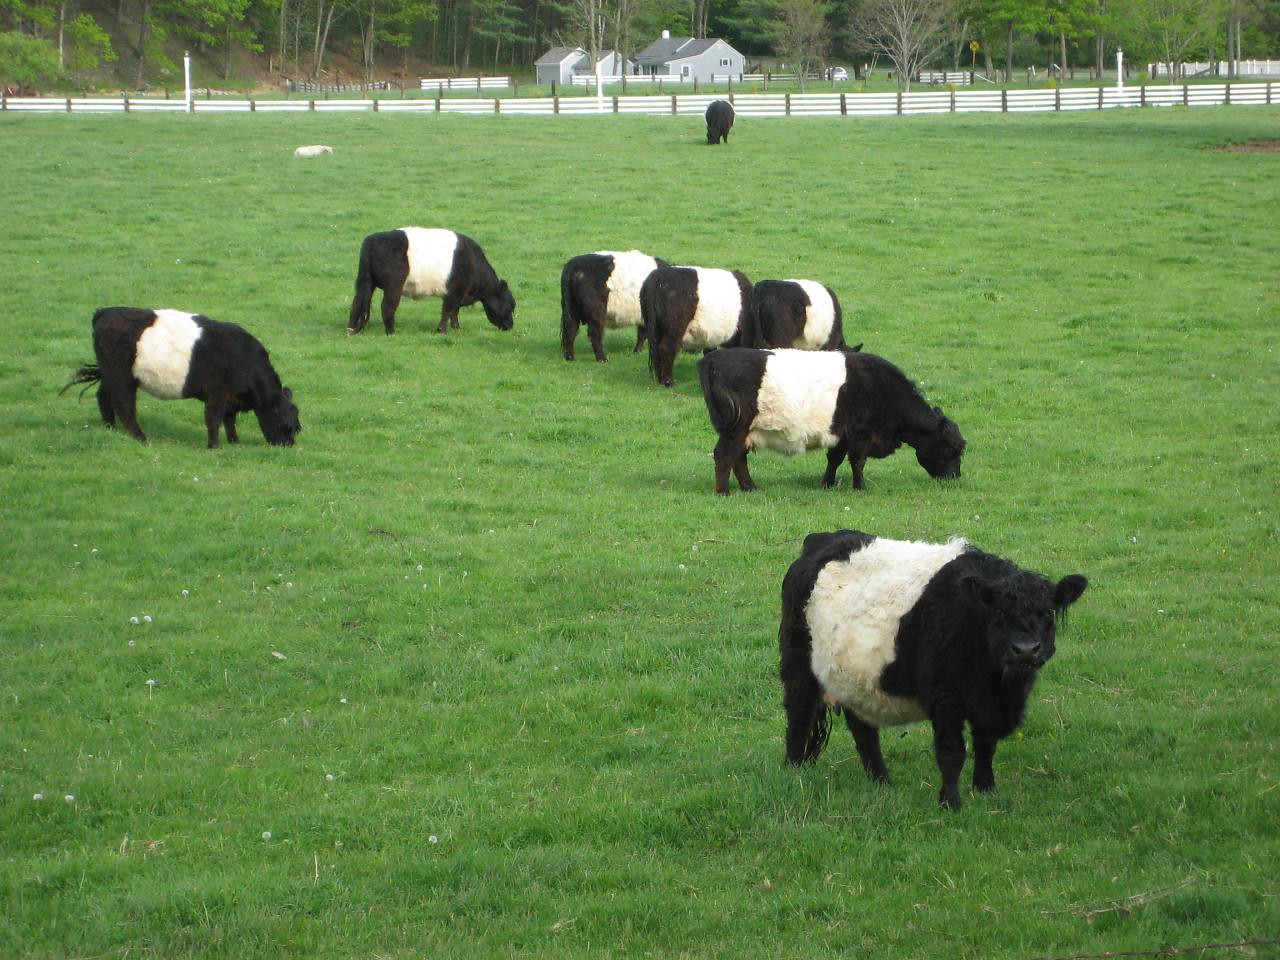 Belted cattle